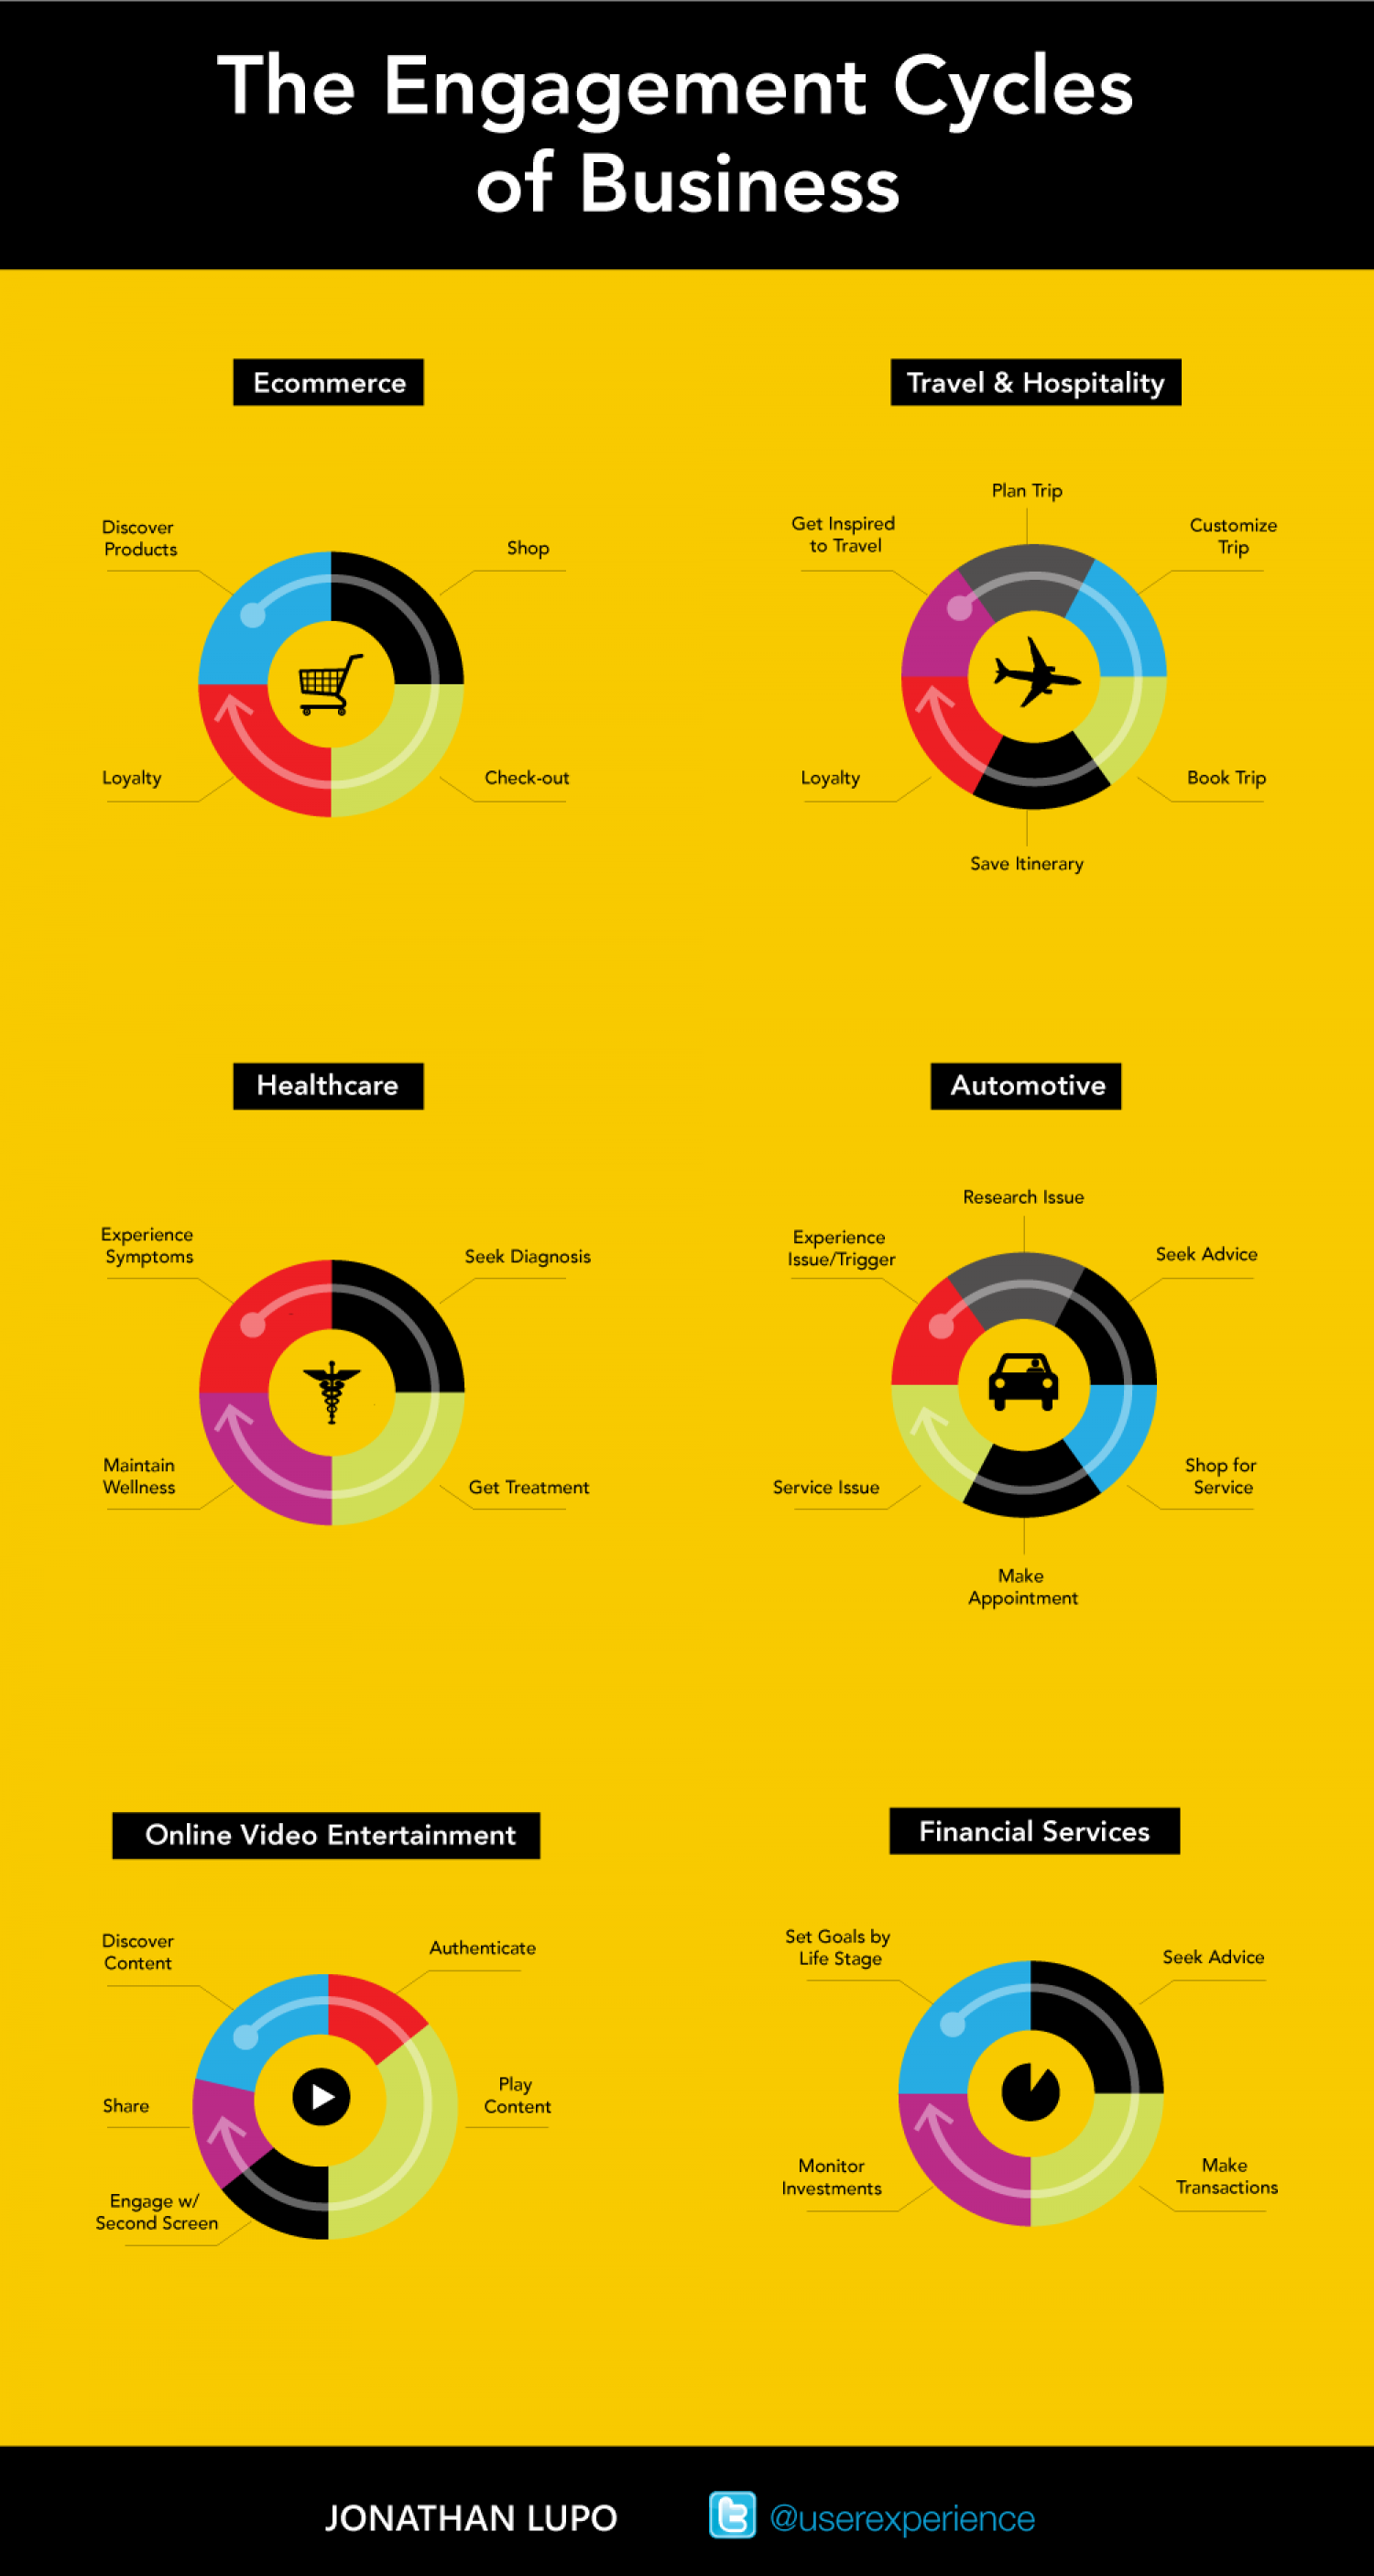 The Engagement Cycles of Business Infographic